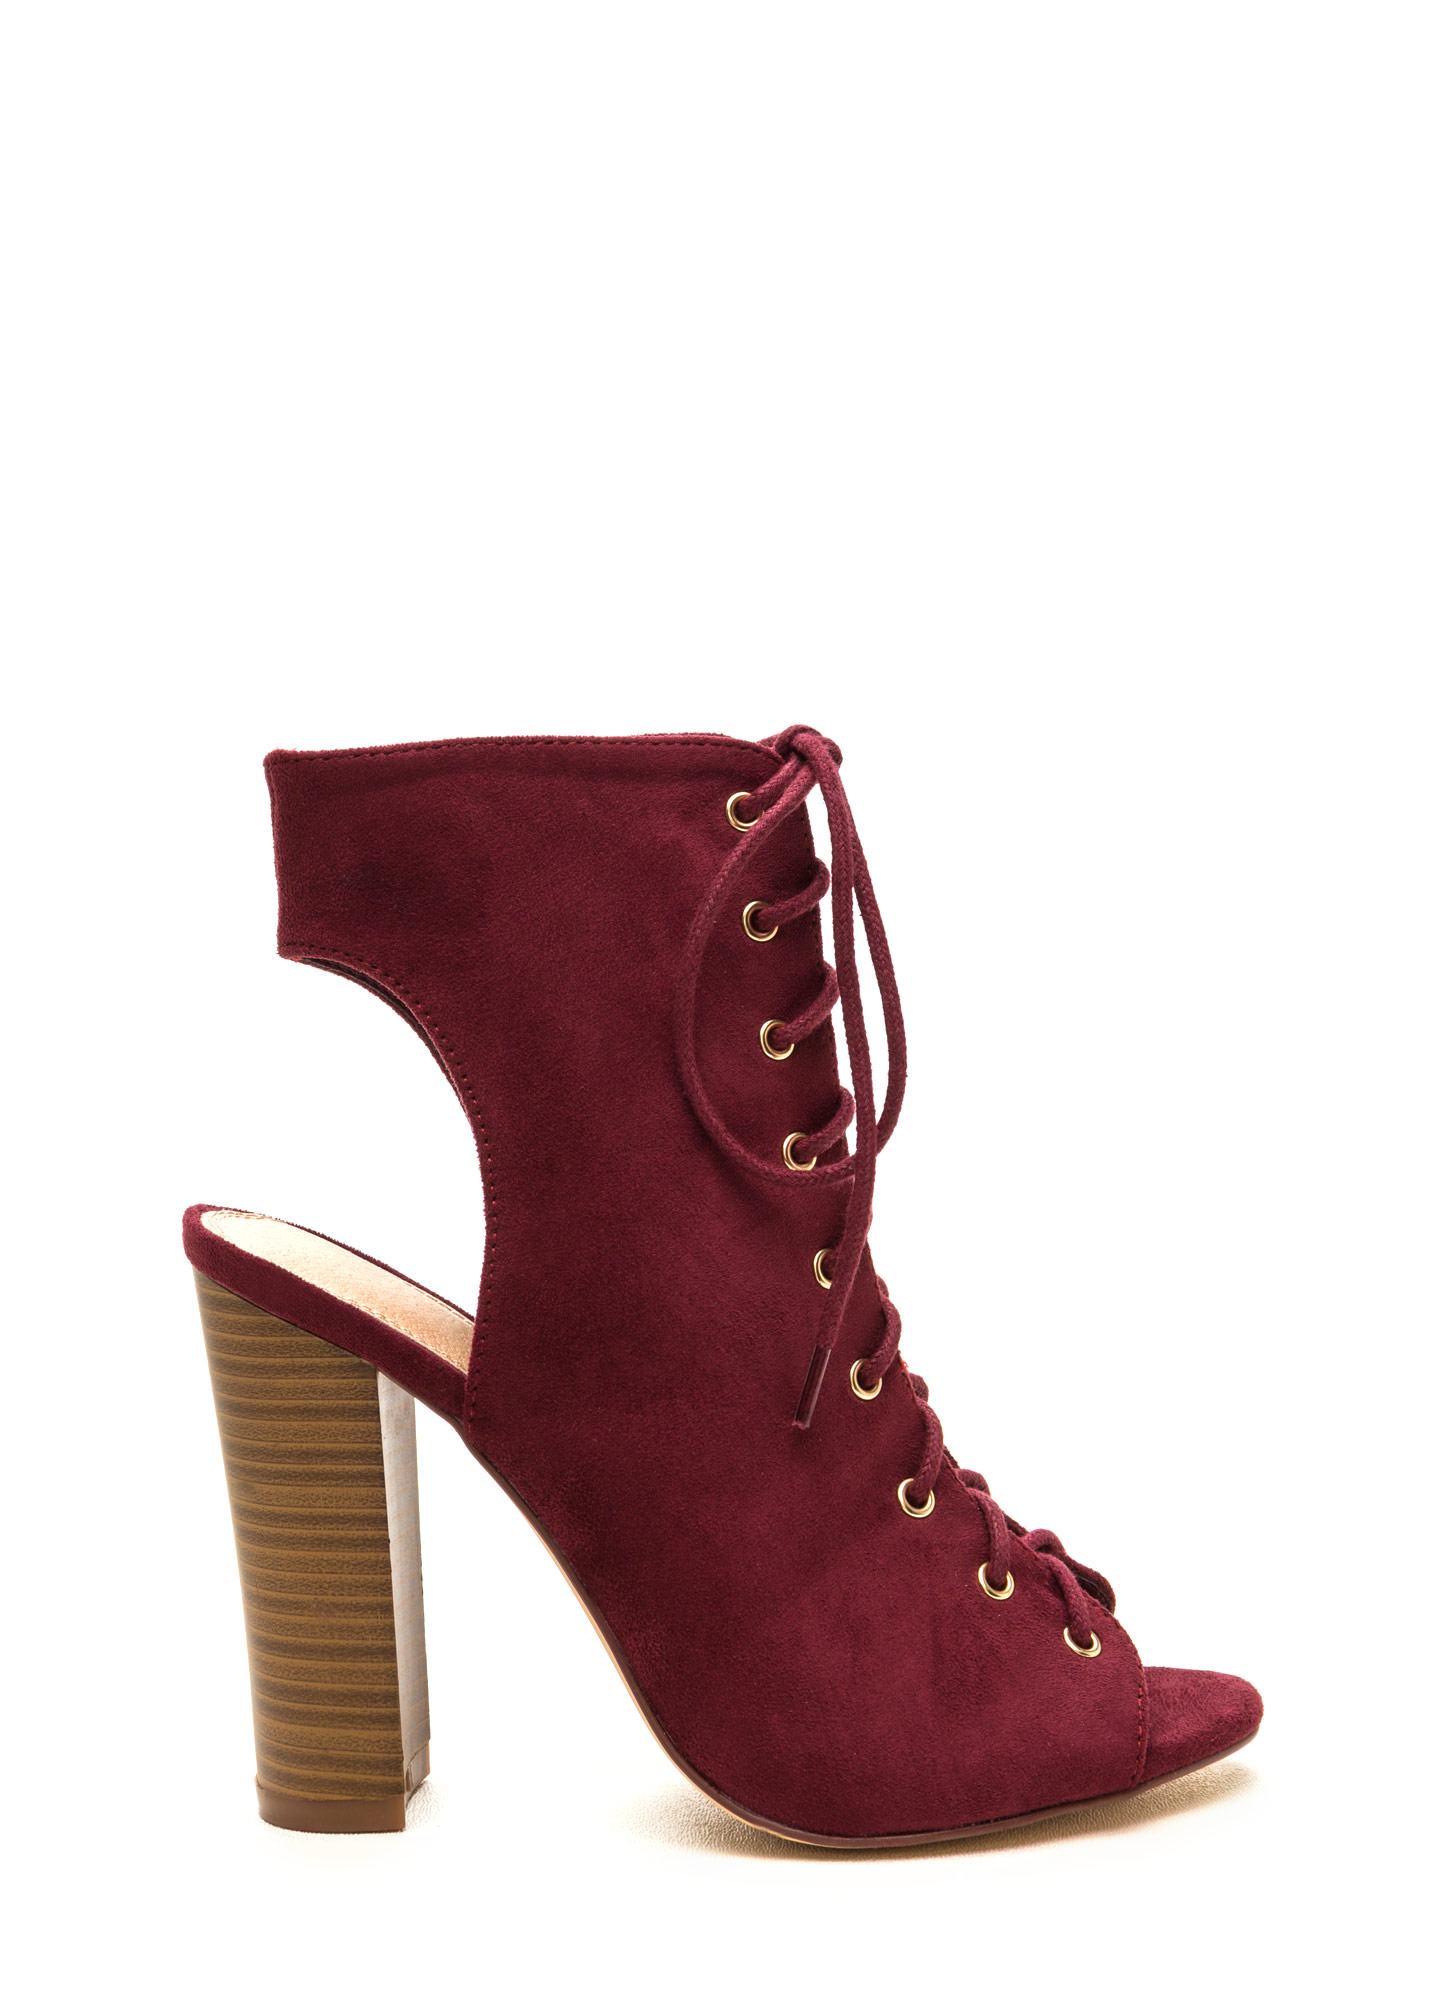 Chic Outlook Lace-Up Chunky Heels WINE